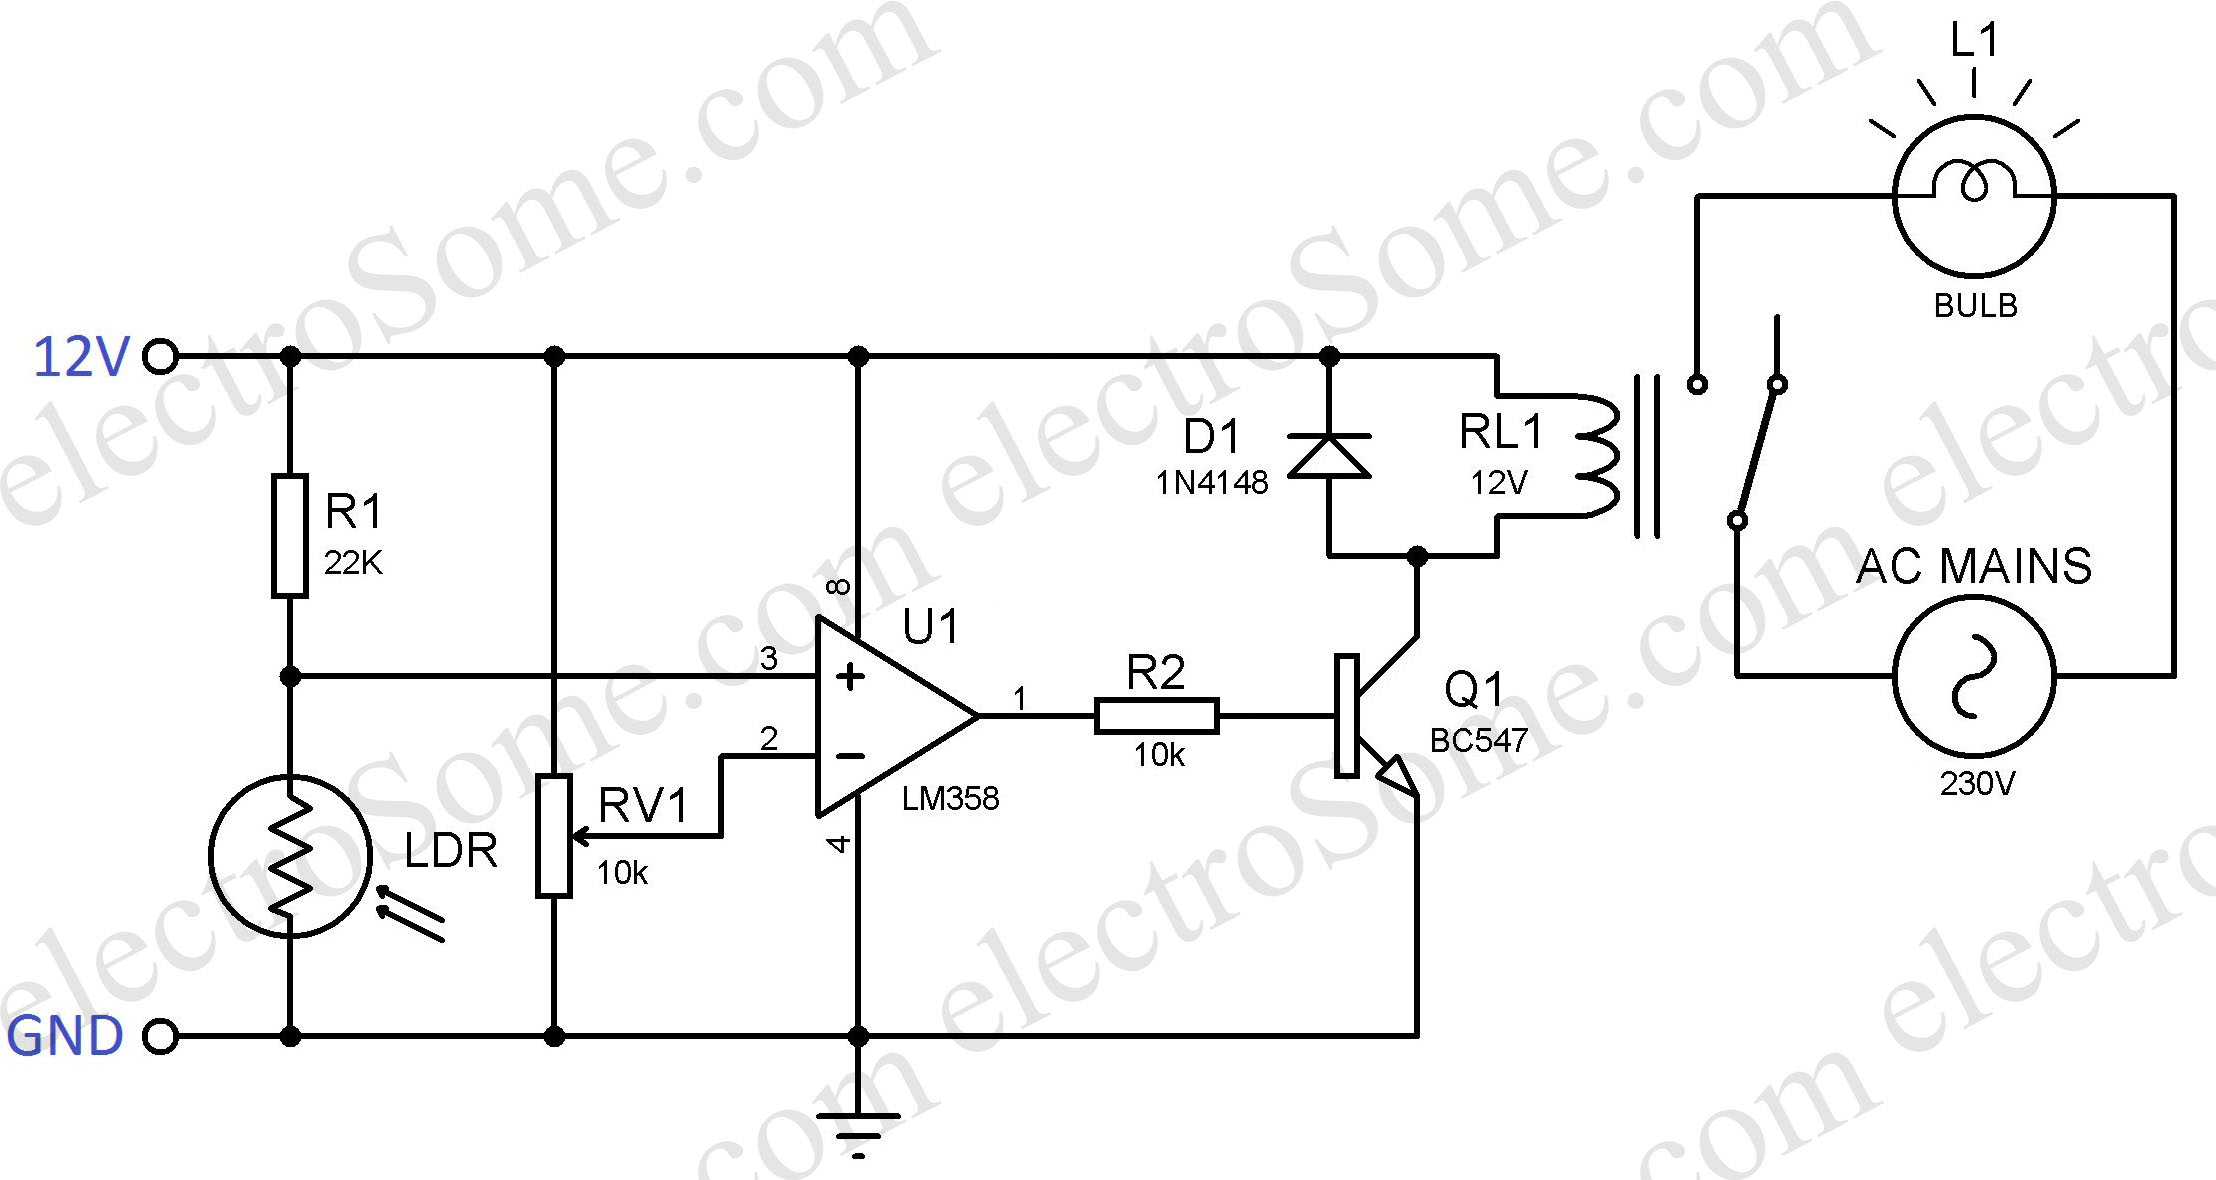 Automatic Night Lamp Using Ldr Led Display Panel Wiring Diagram Circuit